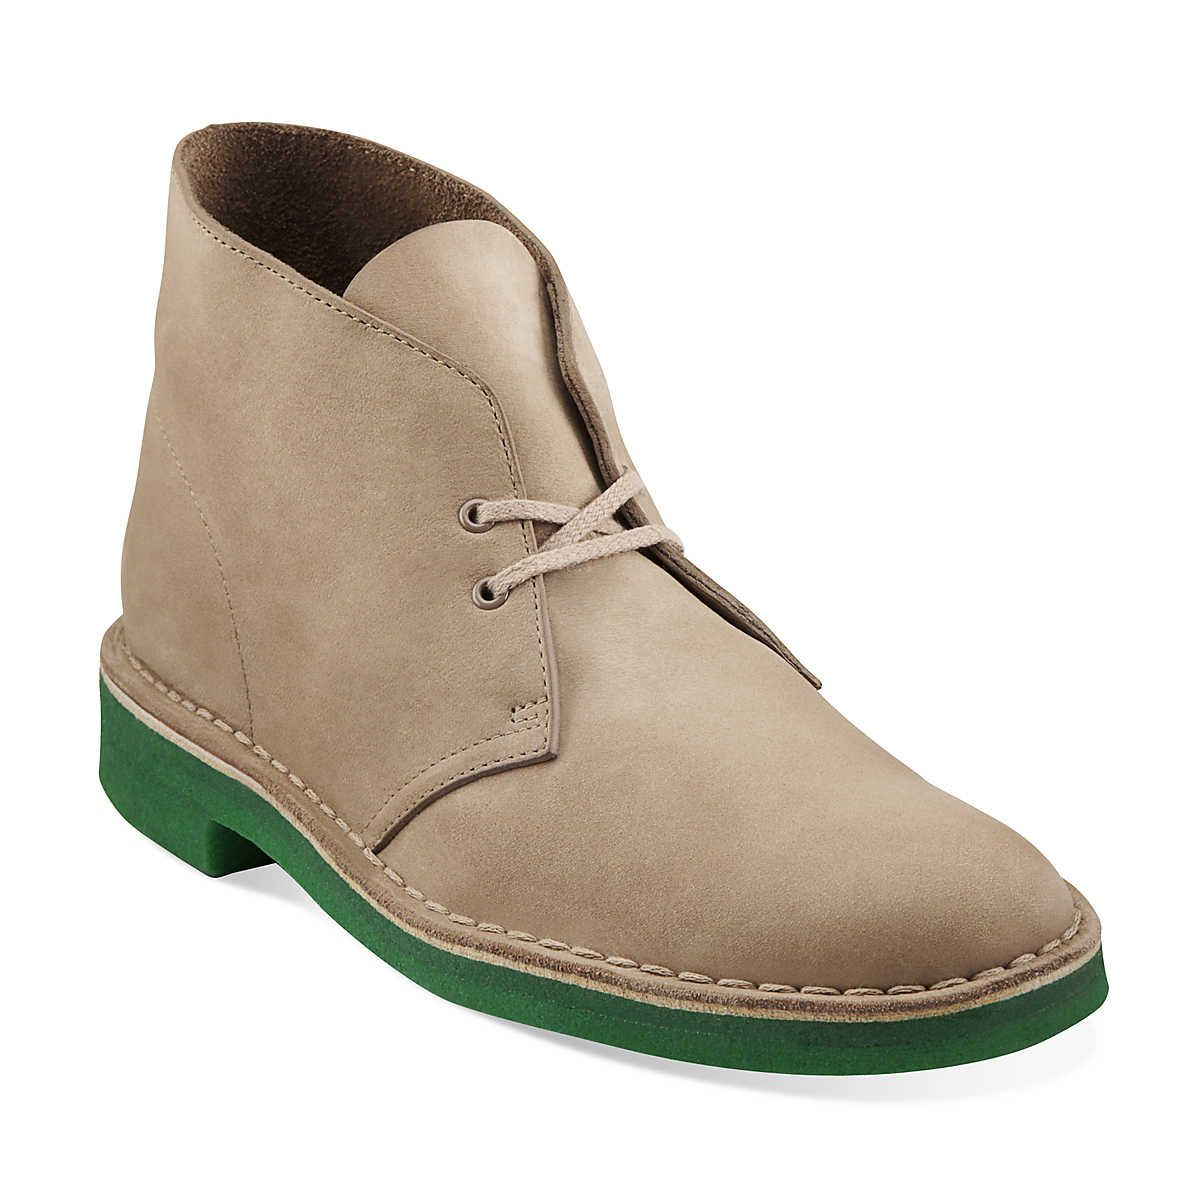 Clarks® Shoes Official Site - Comfortable Shoes, Boots & More. Clarks  Desert BootDesert BootsLow BootsMen's BootsBright ...